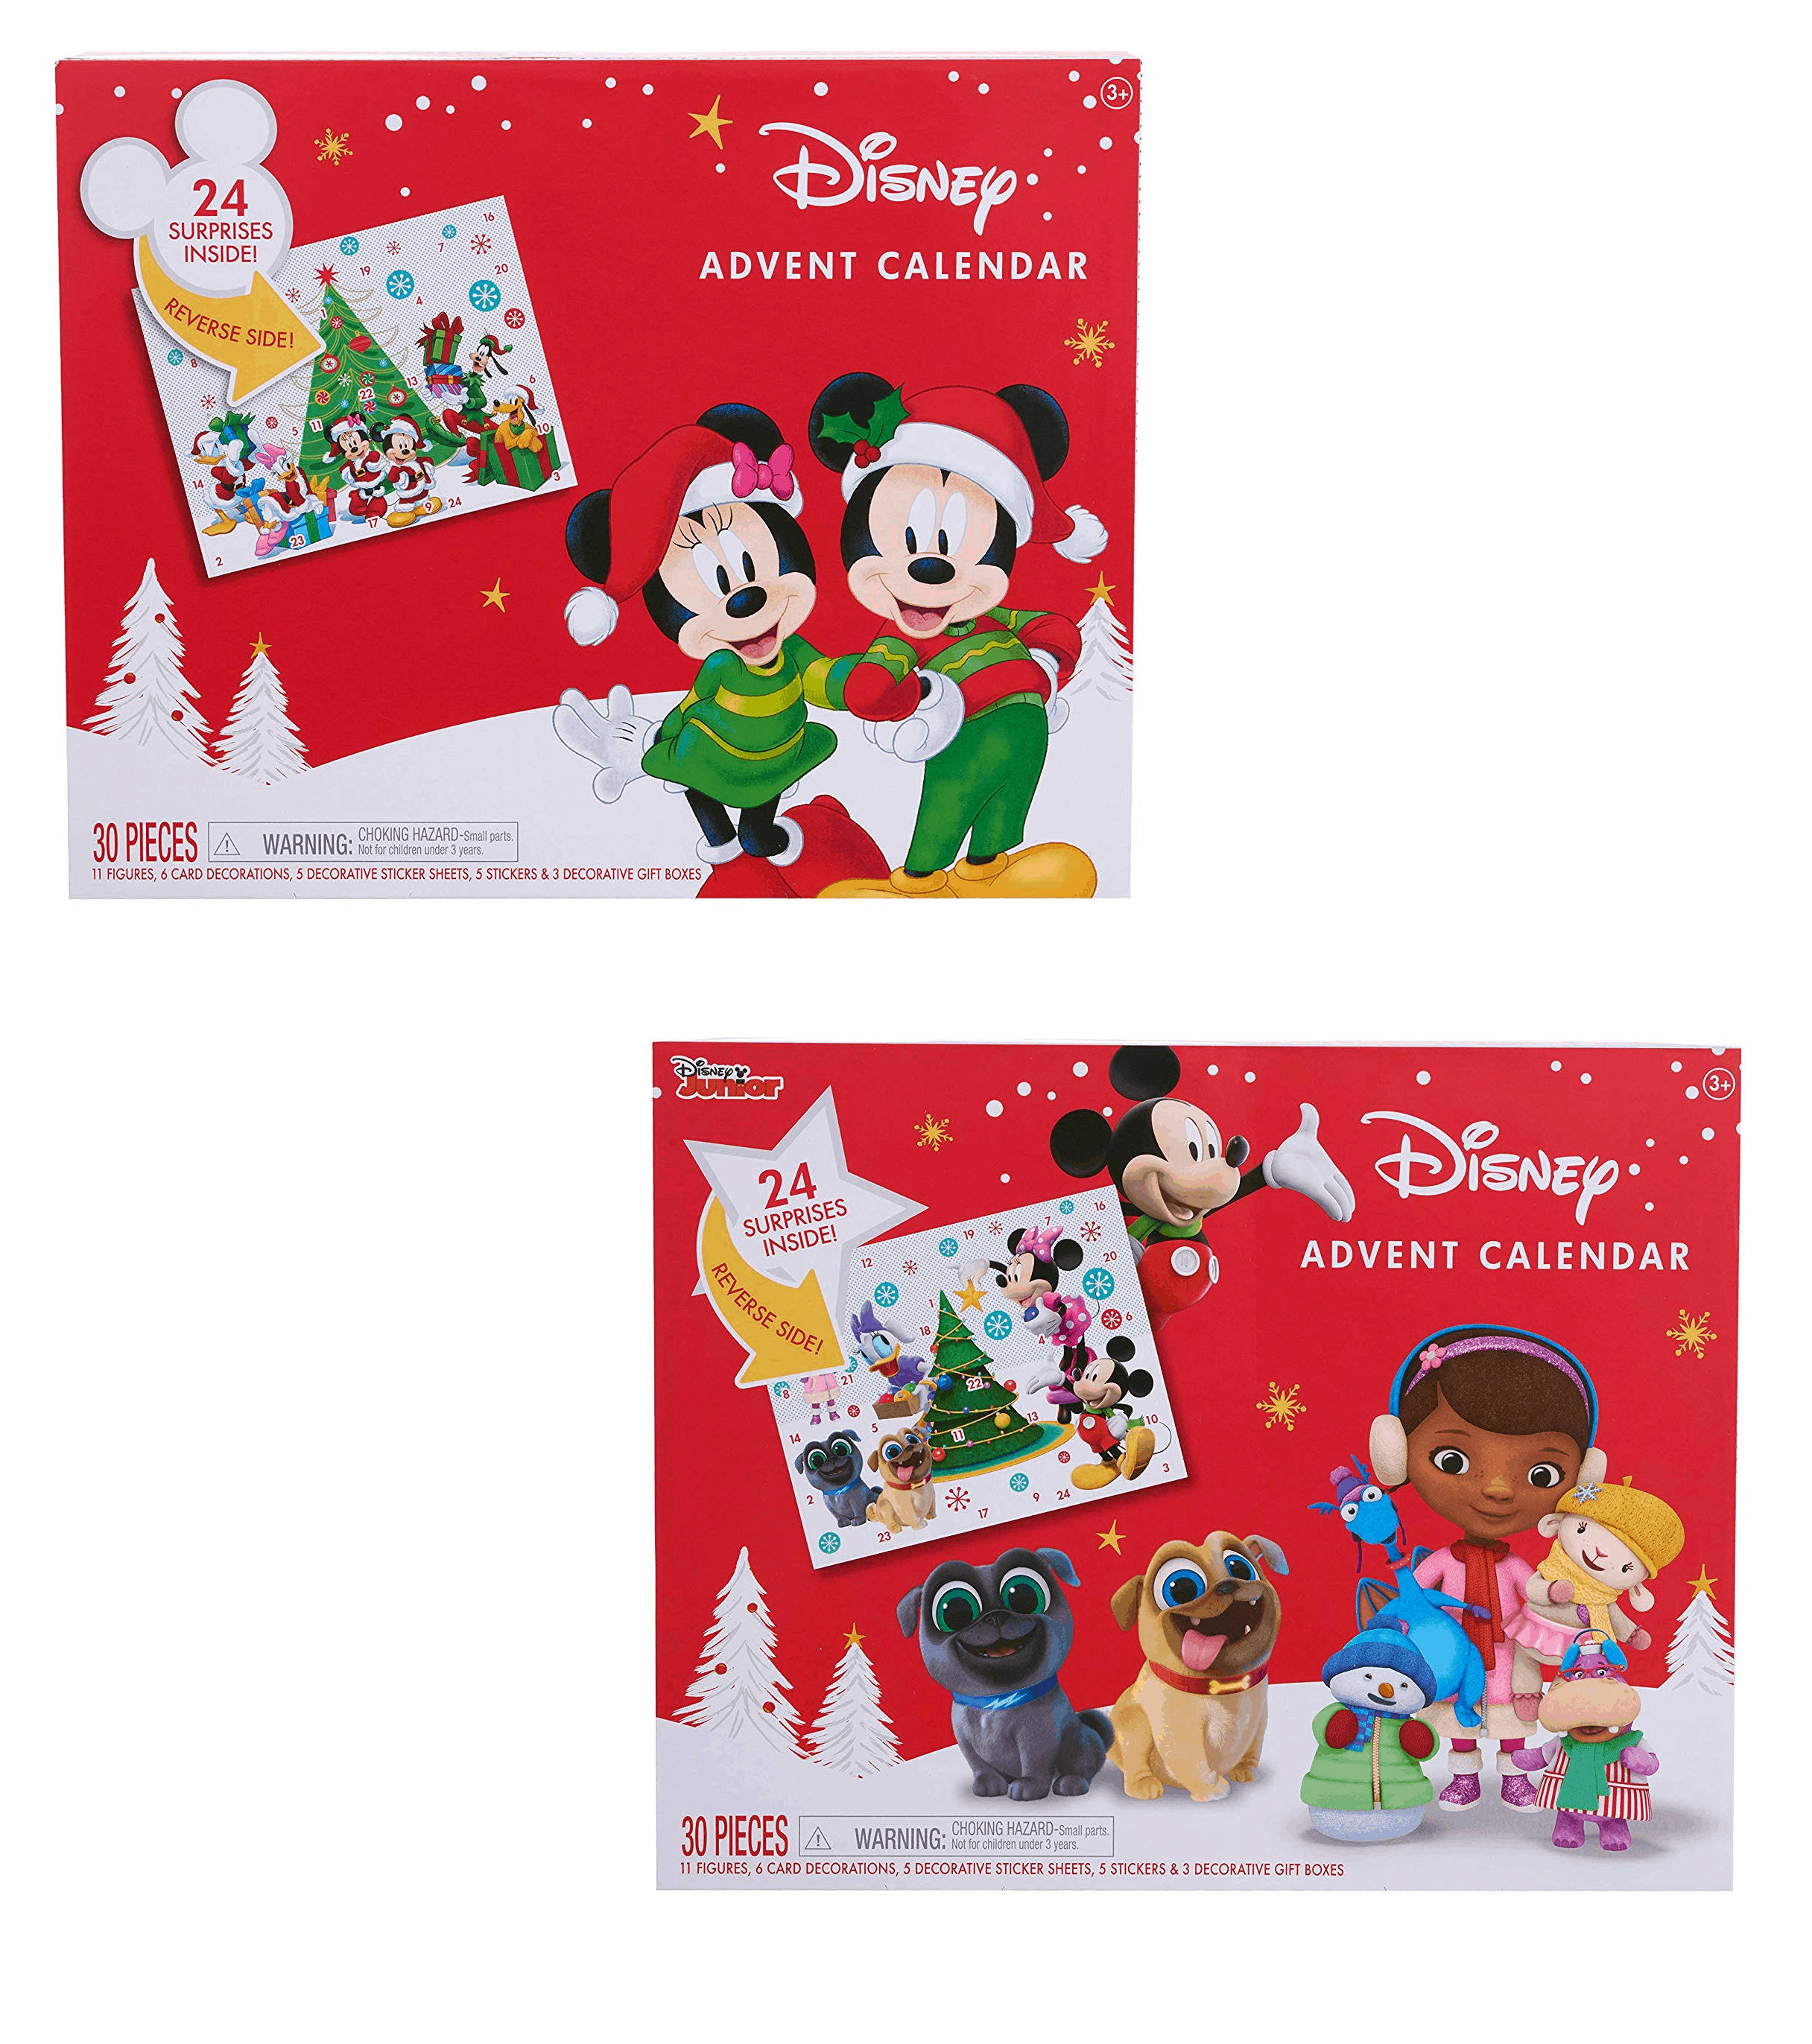 Disney Mickey Mouse & Disney Jr. Advent Calendars $10 Off – TODAY ONLY!